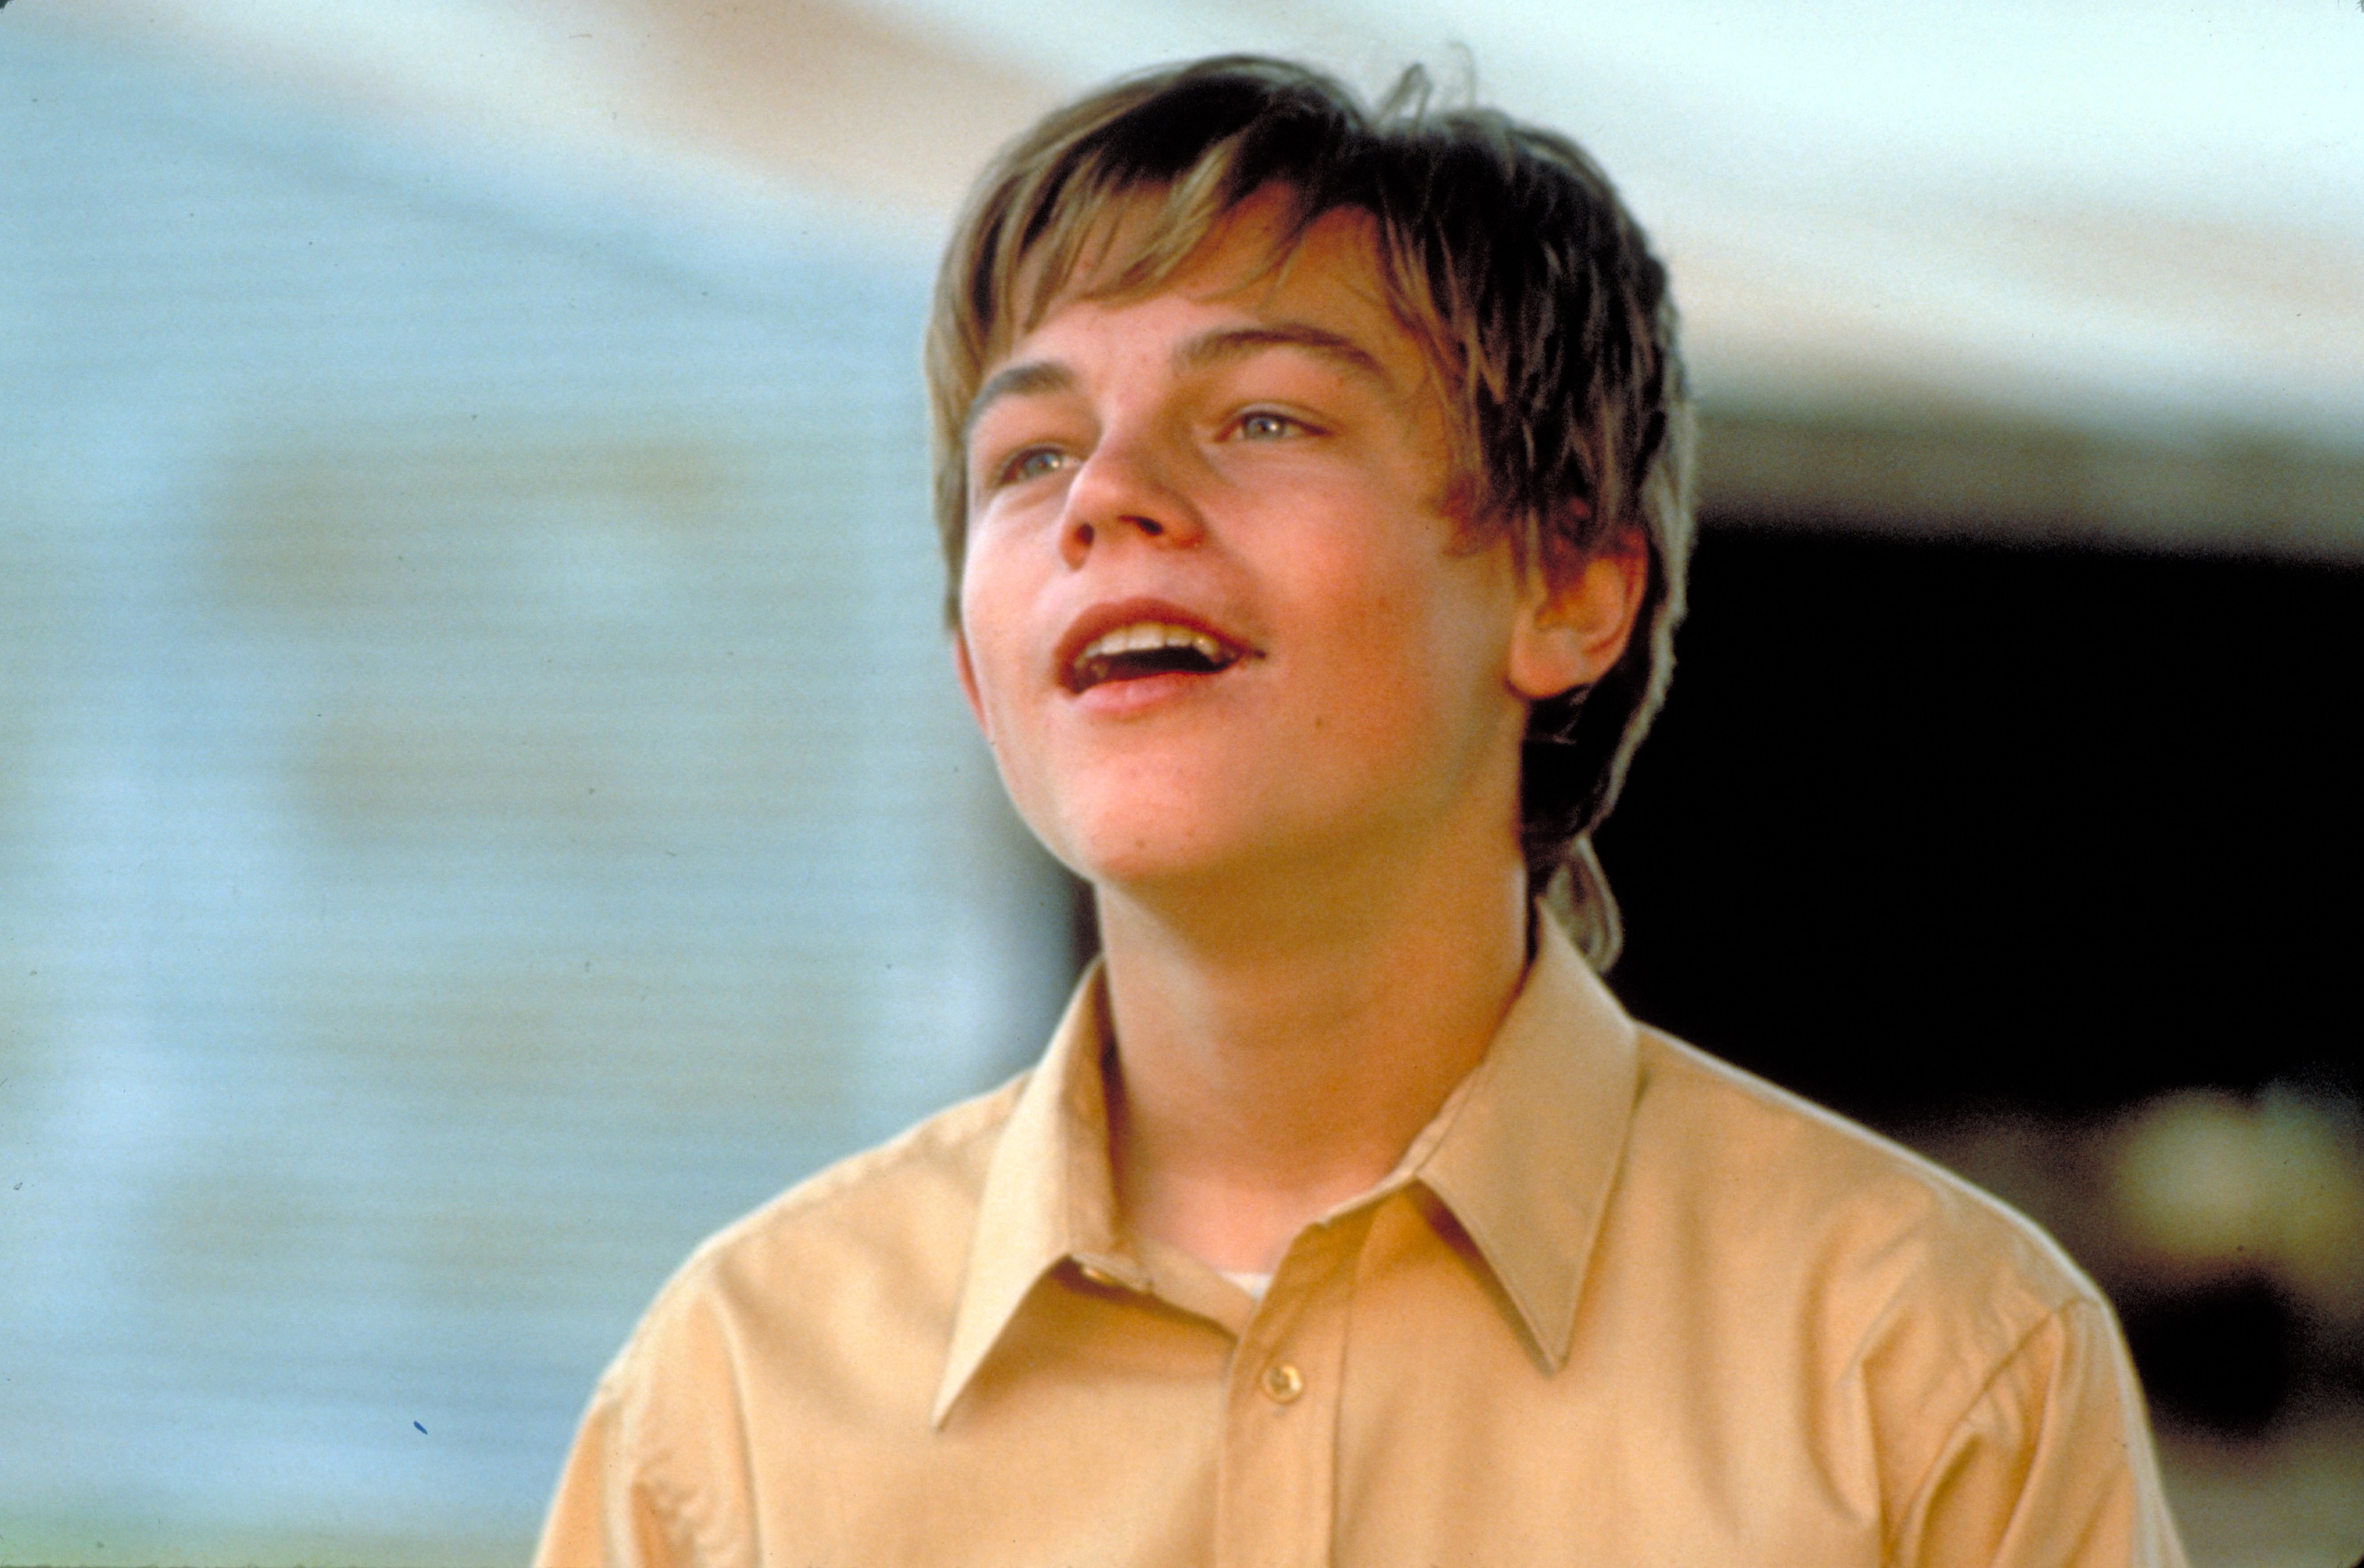 1572863920635_WHATS EATING GILBERT GRAPE 1993.jpg - Buon compleanno Mrs Grape del 1993